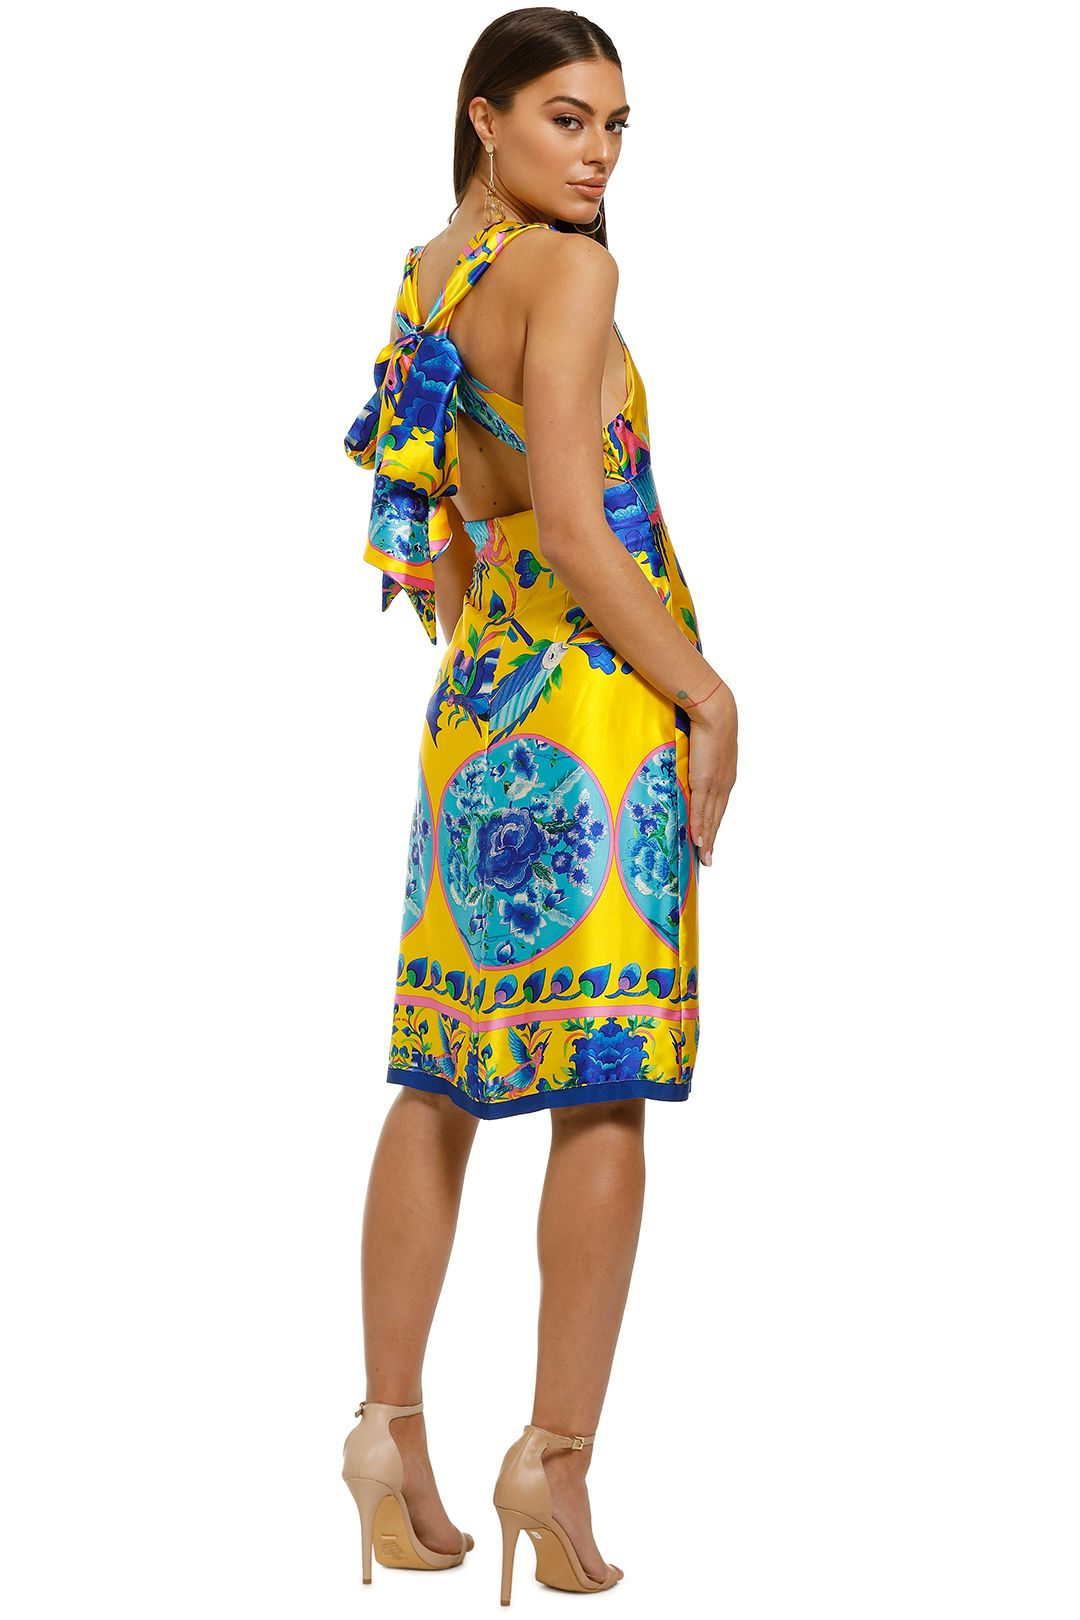 Cooper-by-Trelise-Cooper-Burning-Bright-Dress-Yellow-Print-Back